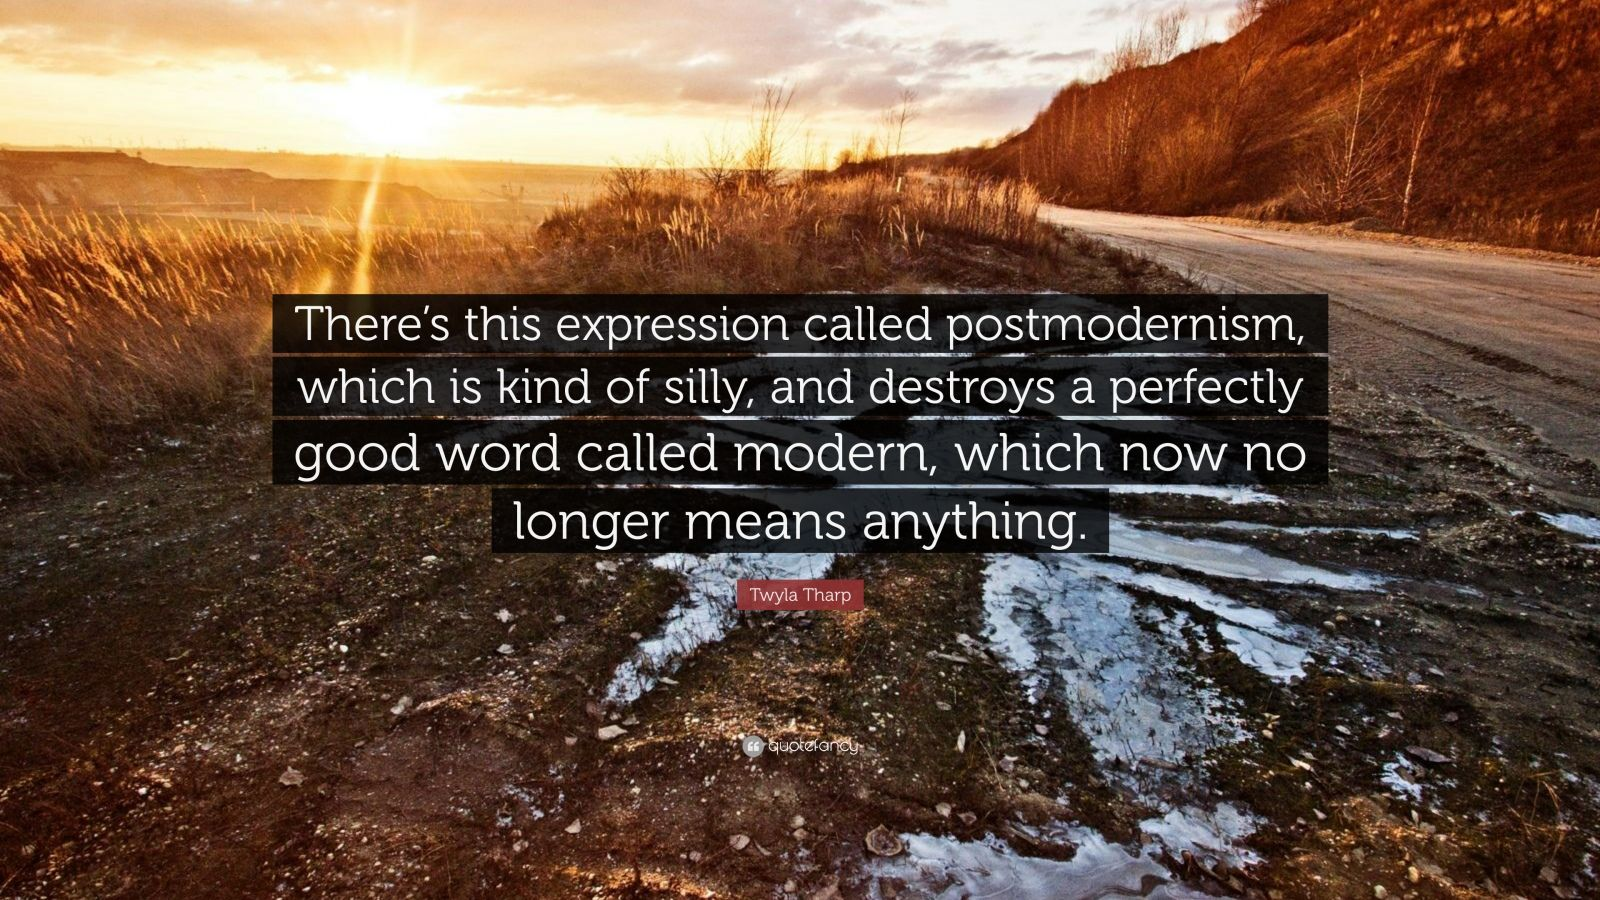 """Twyla Tharp Quote: """"There's this expression called postmodernism, which is kind of silly, and destroys a perfectly good word called modern, which now no longer means anything."""""""